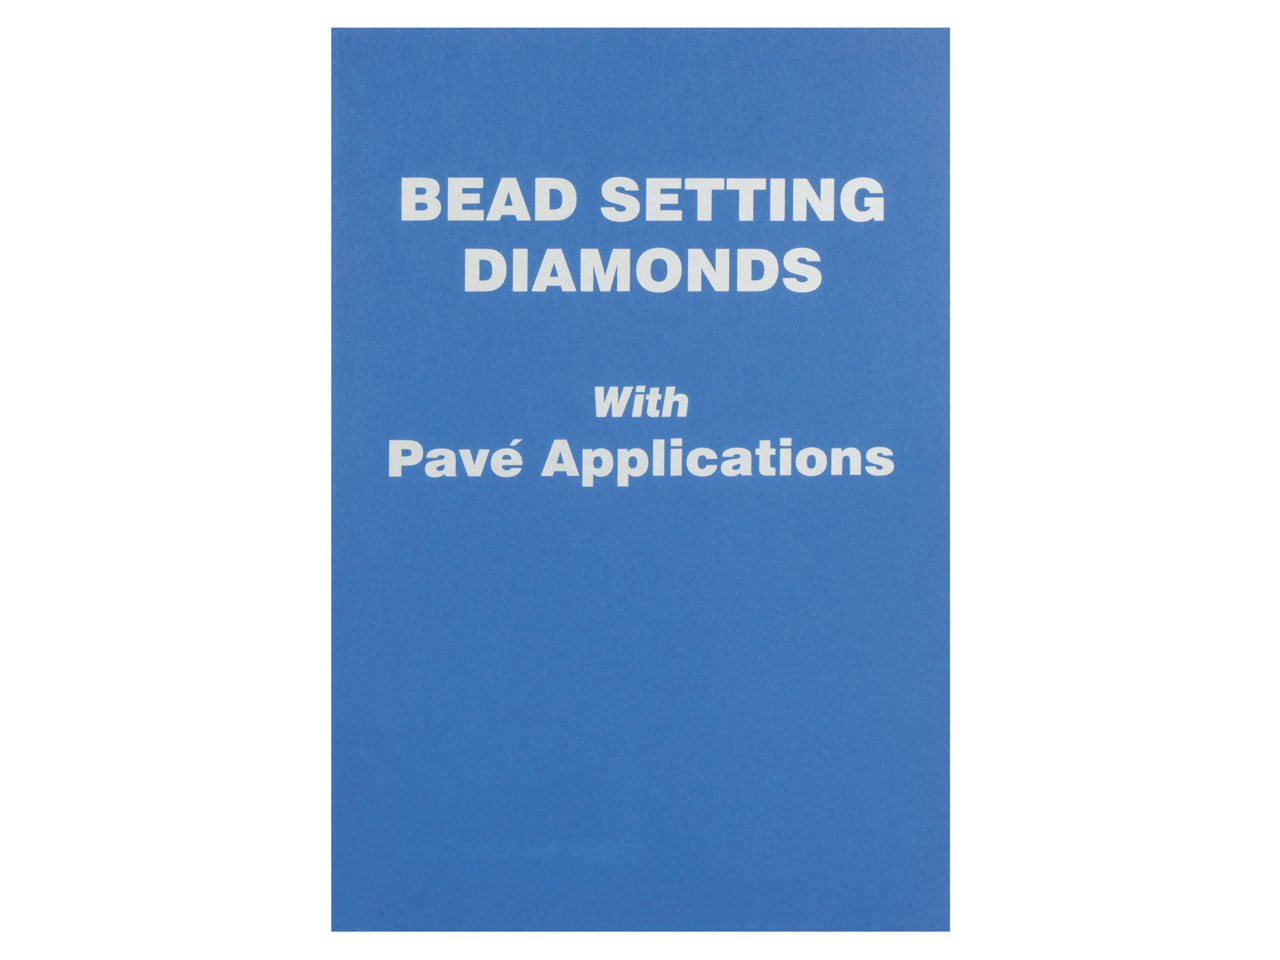 Bead Setting Diamonds With Pave    Applications By Robert R Wooding